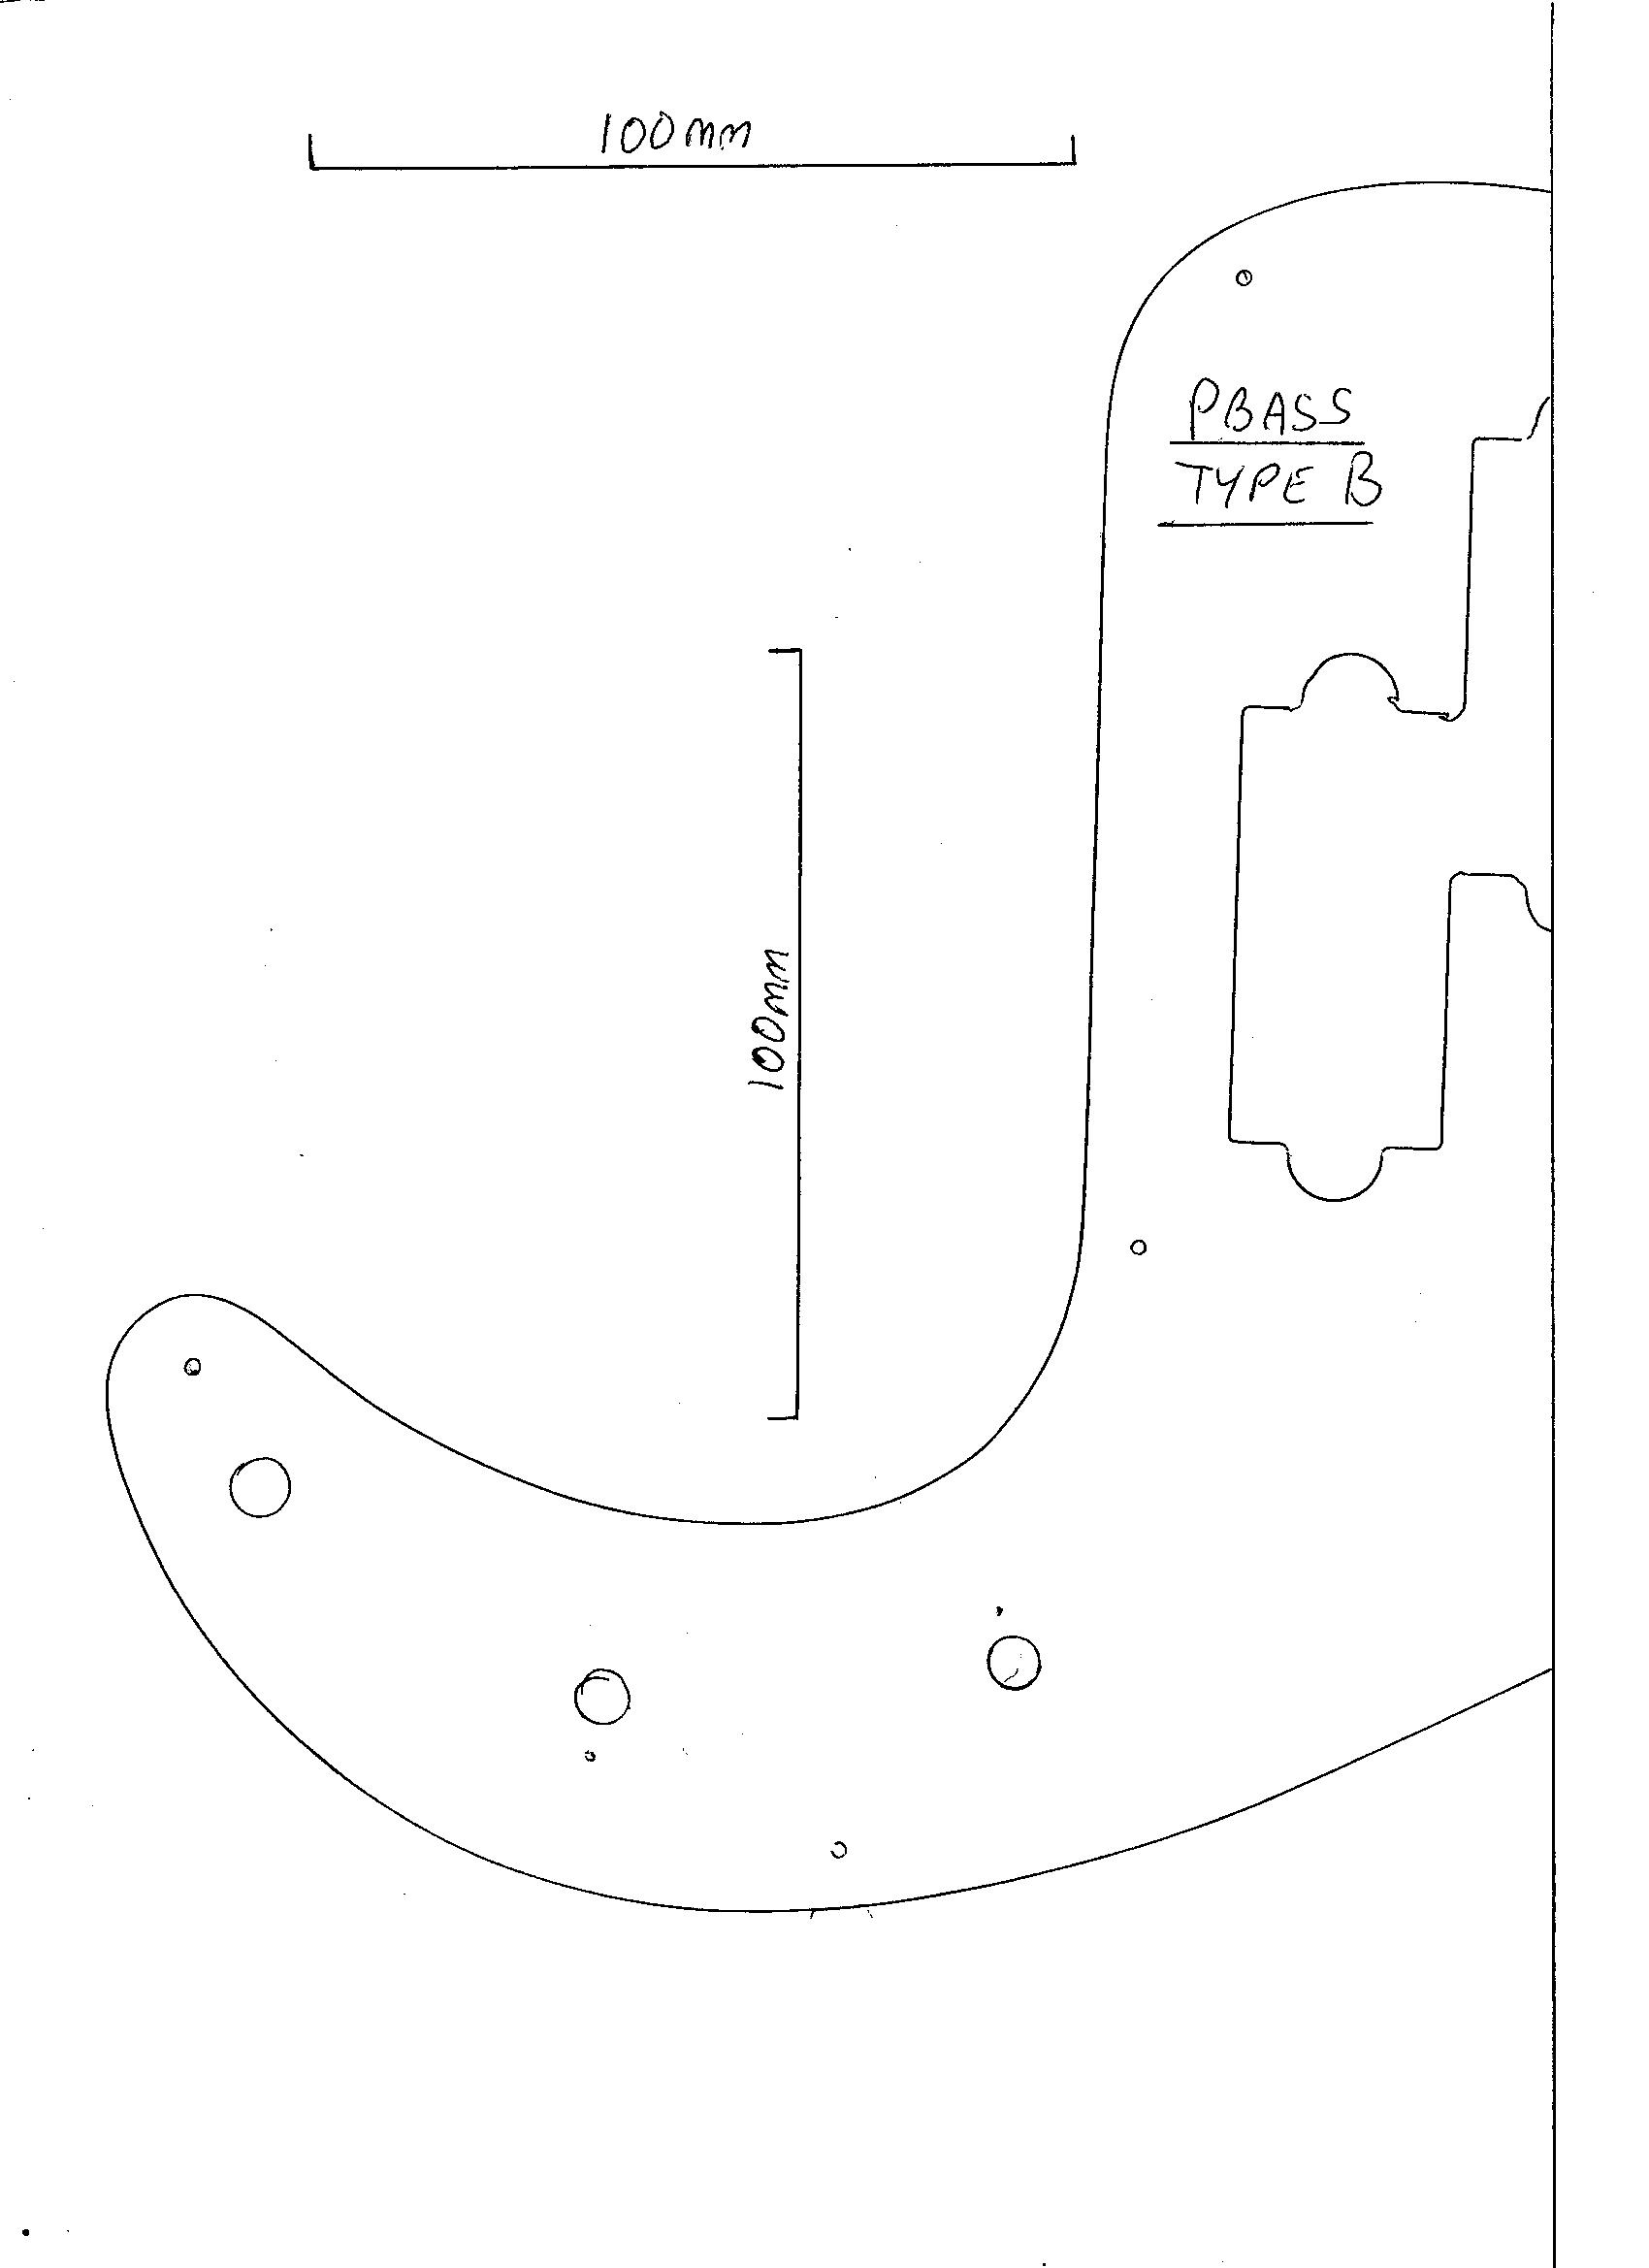 p bass body dimensions 2001 pajero radio wiring diagram precision guitar pickguard 3 ply black scratch plate